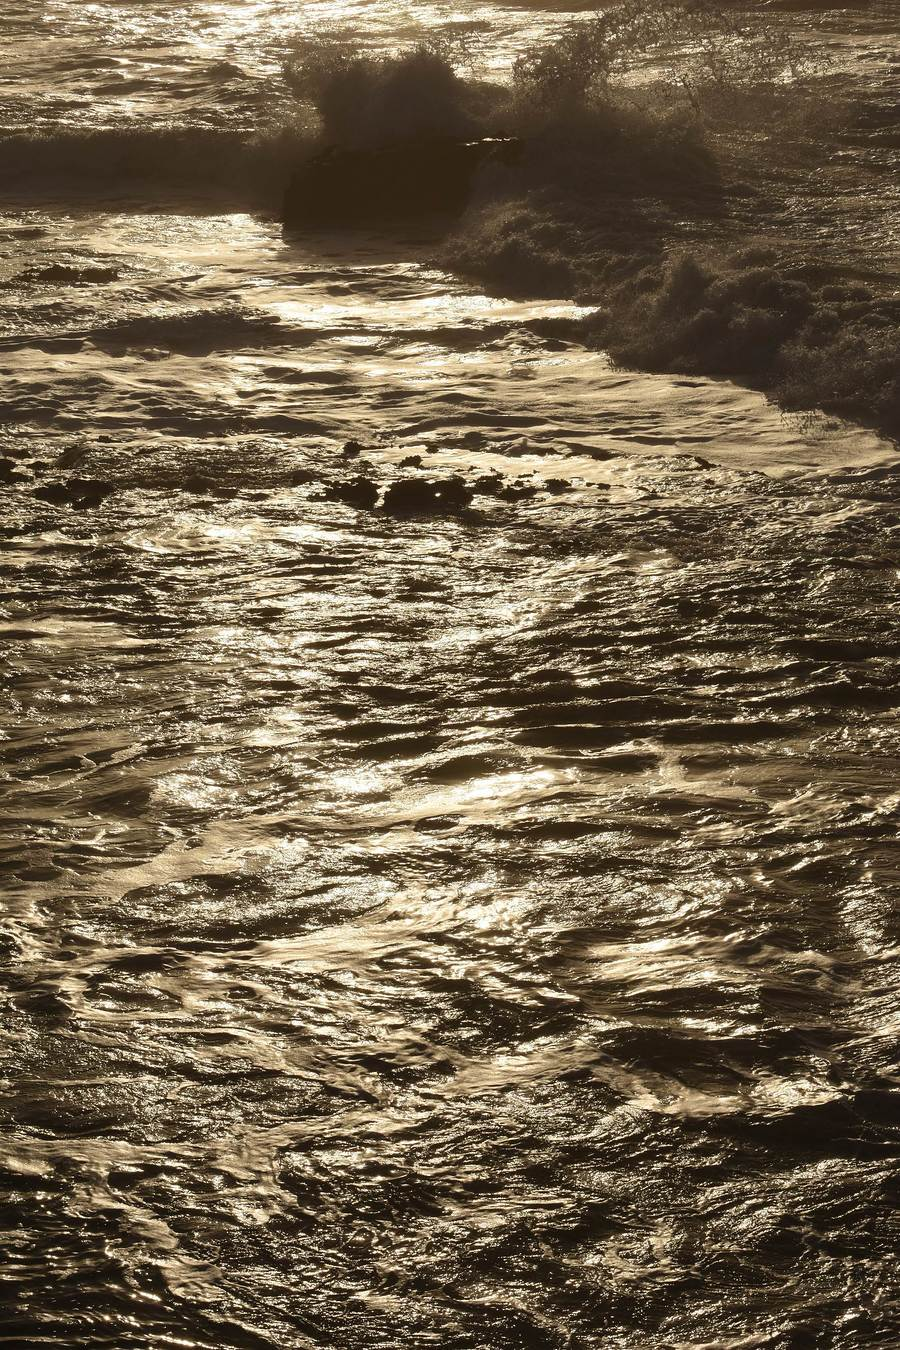 Swirling sea at Essaouira / Photography by Independent / Uploaded 27th June 2018 @ 06:54 PM